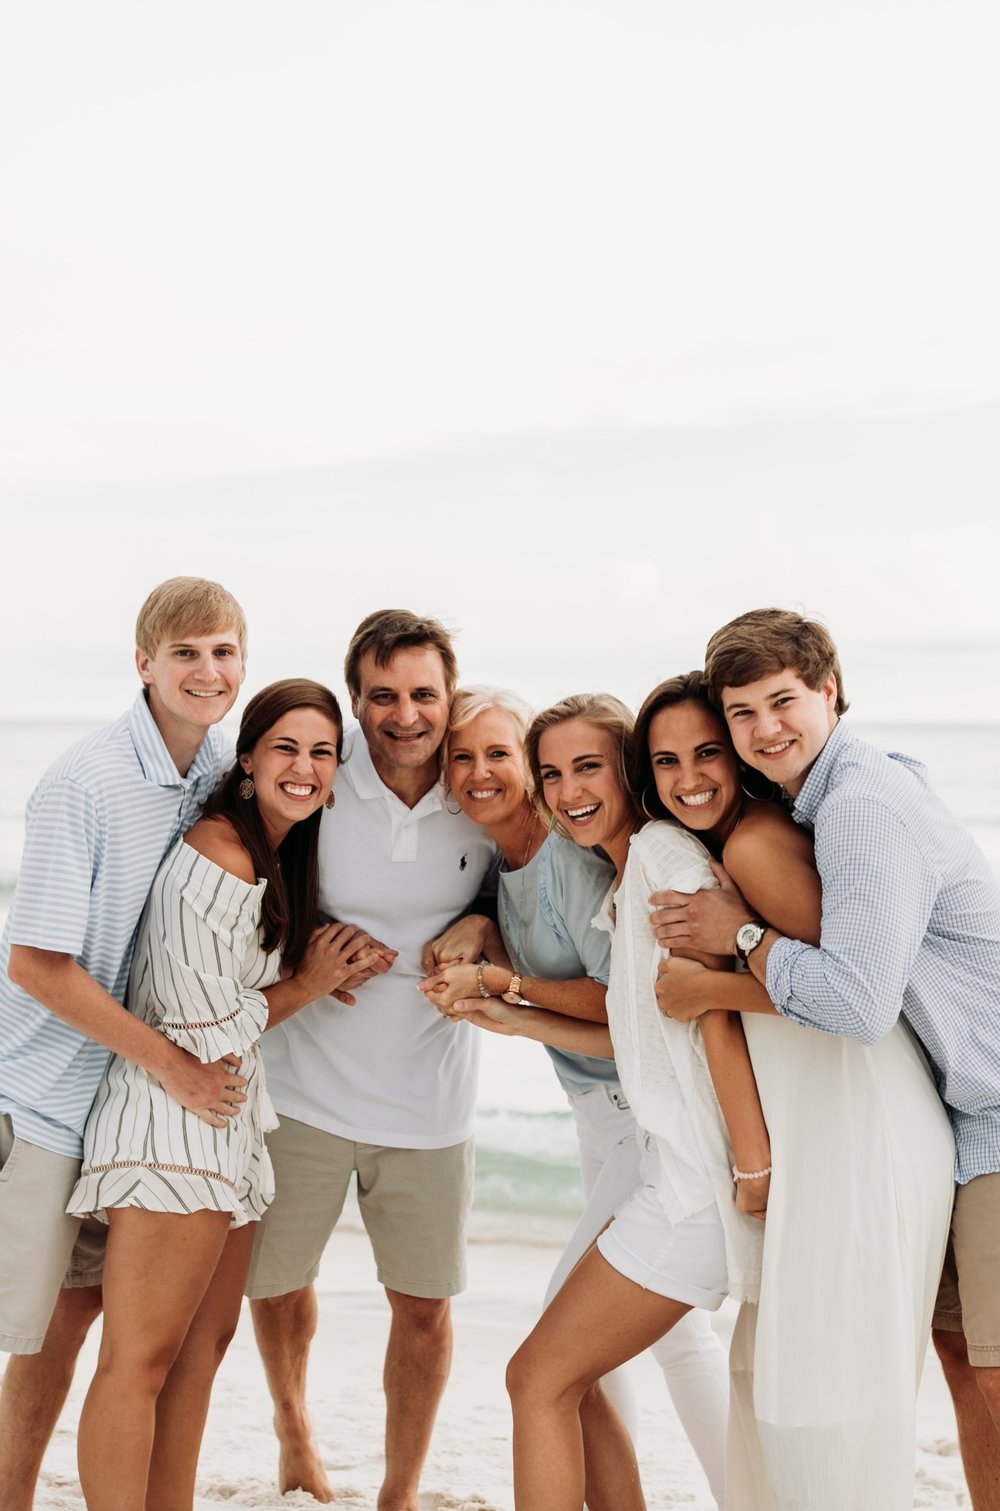 Families - the most perfect gift in life is family